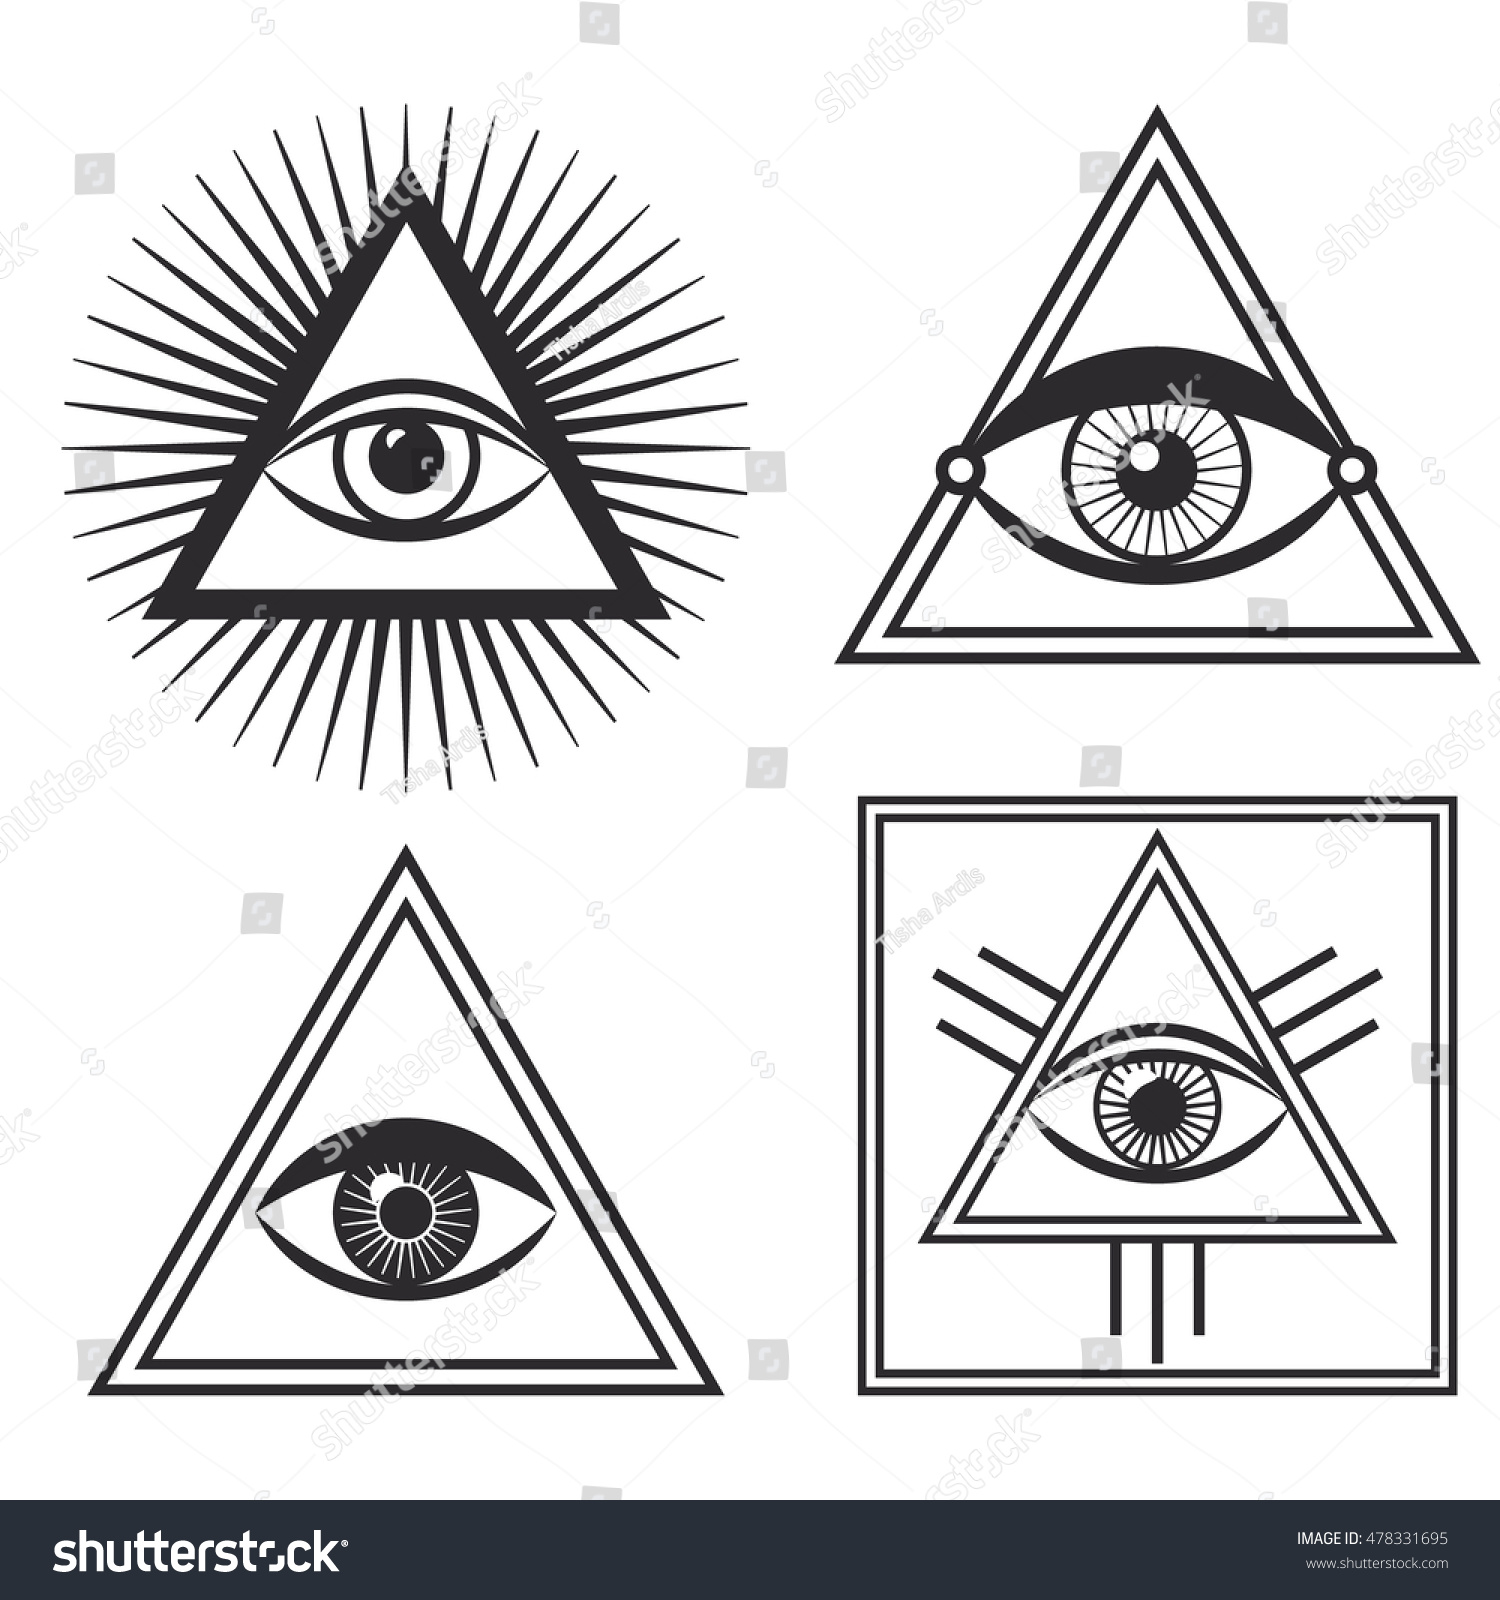 Royalty Free Vector Set Of Occult Sign Third Eye 478331695 Stock